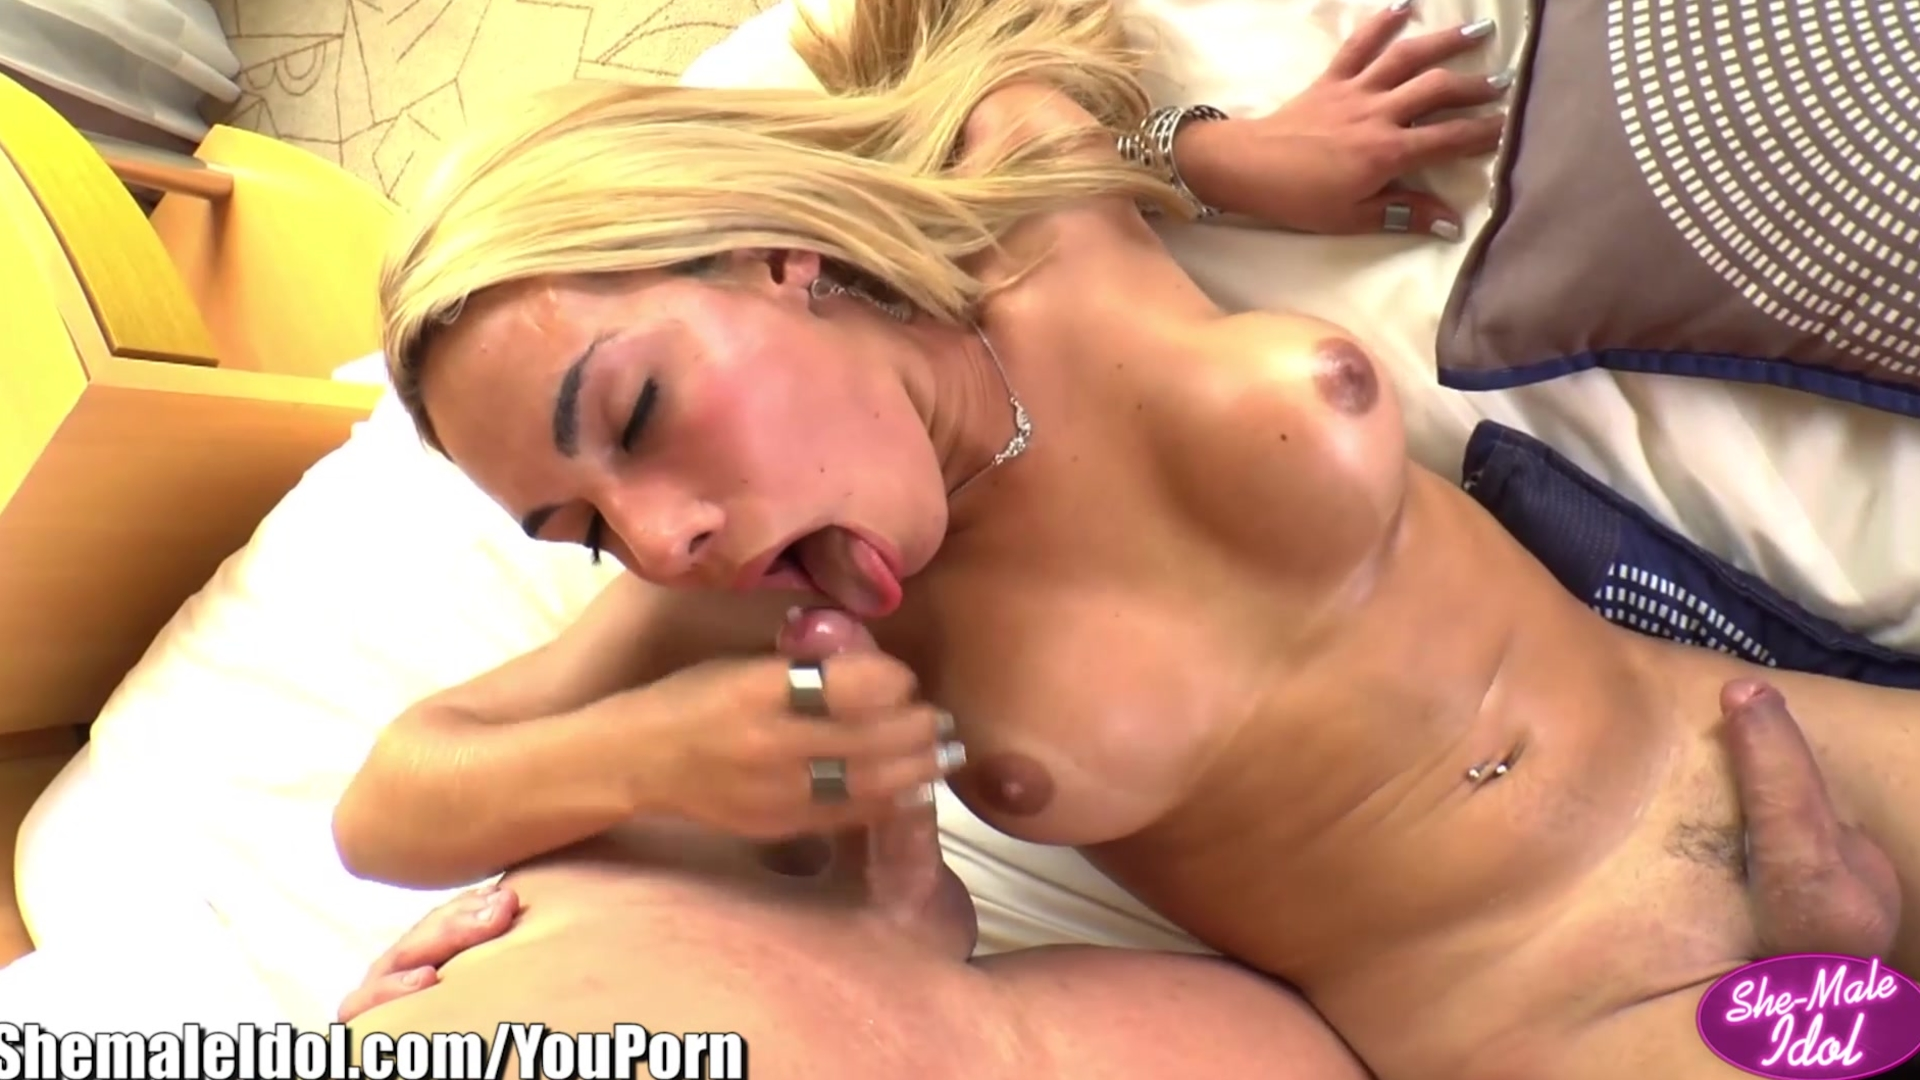 ShemaleIdol Alex Victor Rimming and Sucking Hot Shemale